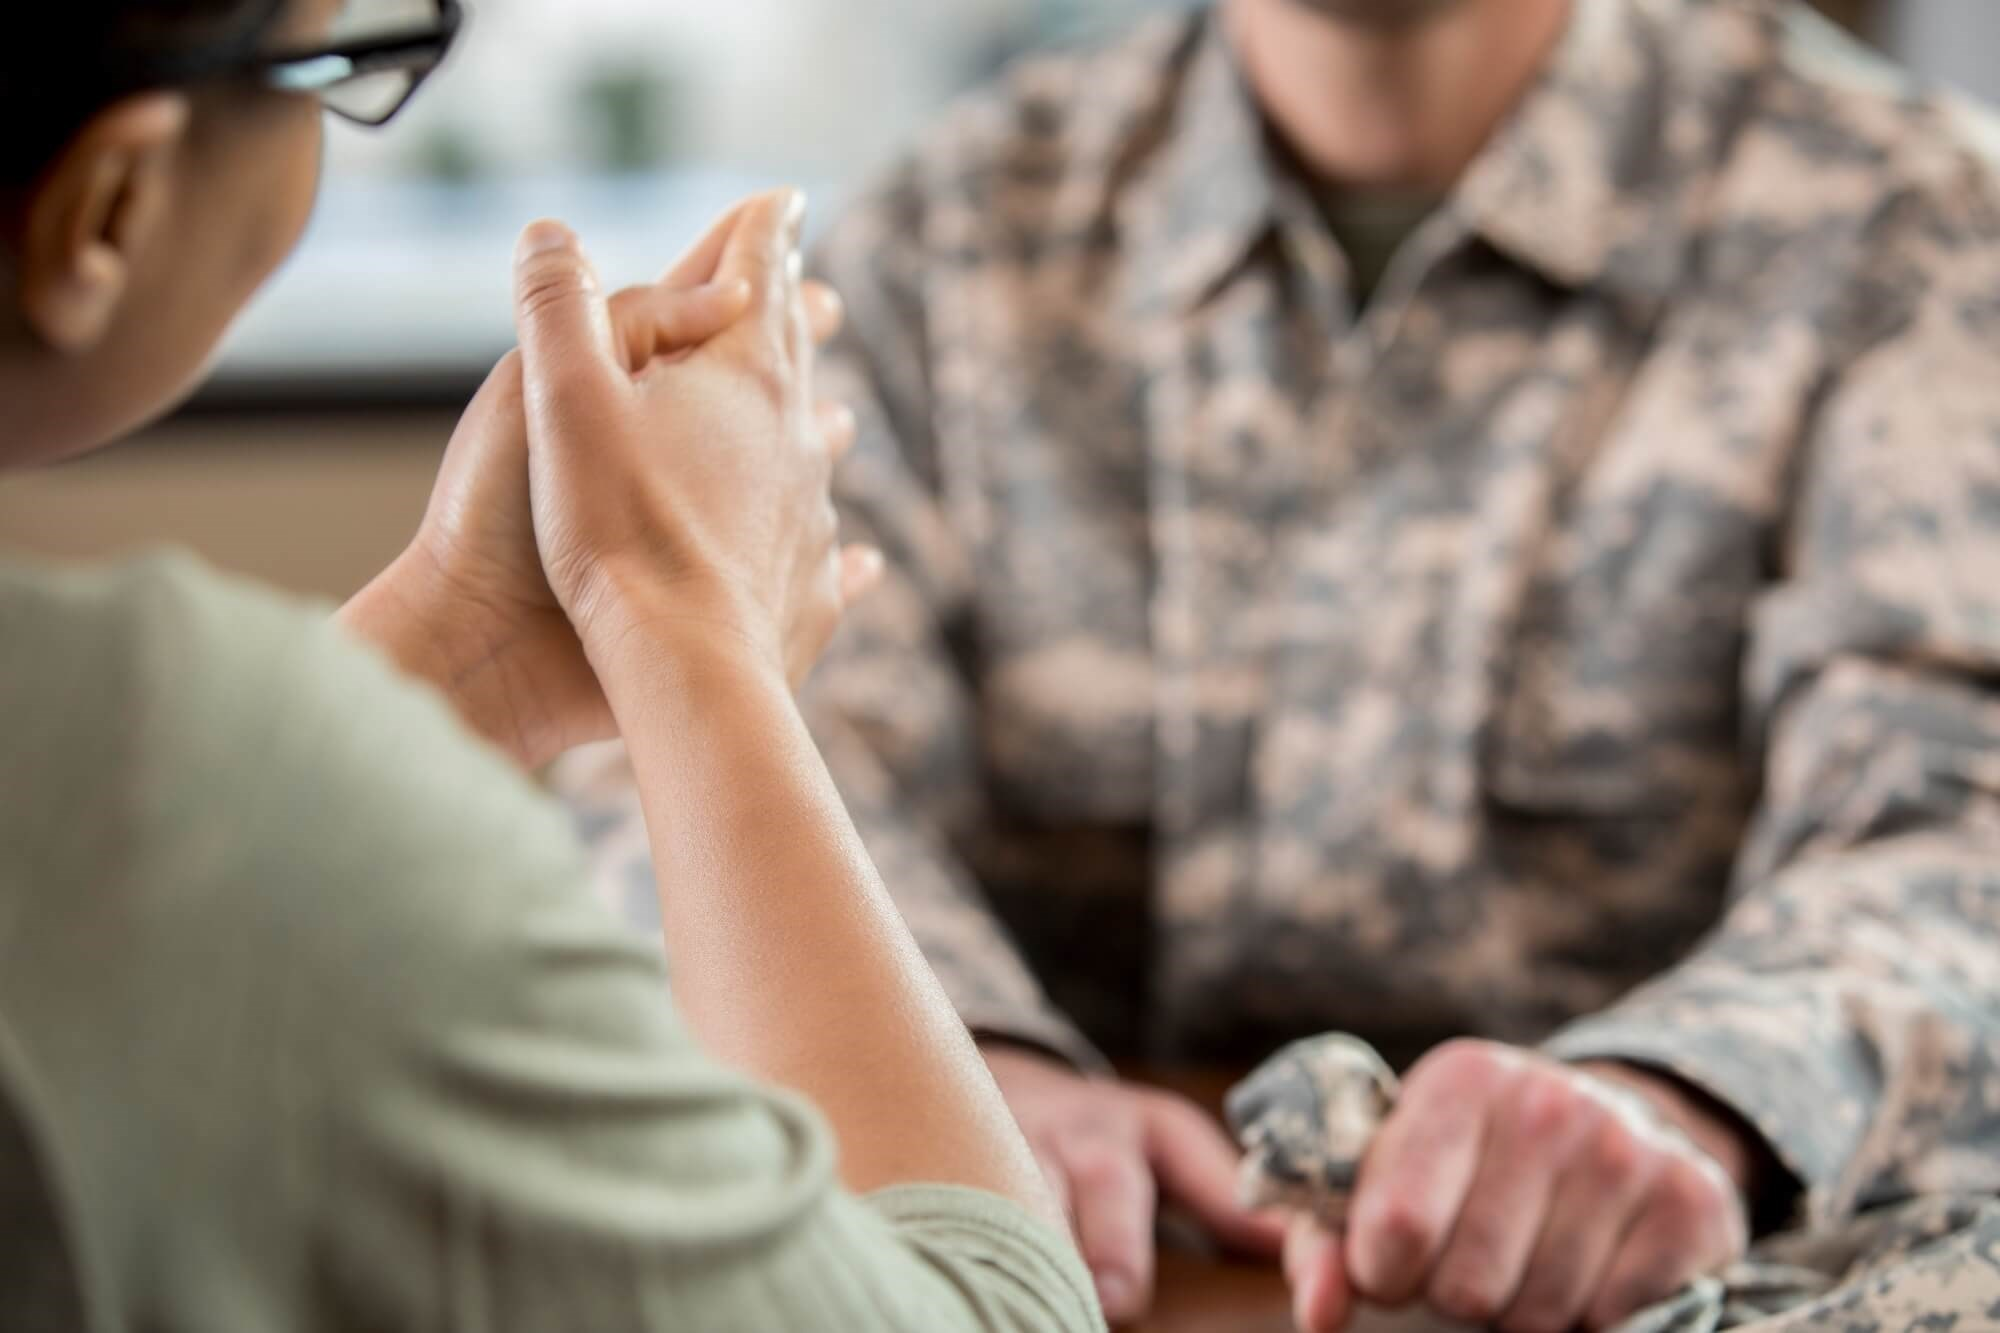 Mindfulness-Based Stress Reduction Effective for Veterans With PTSD